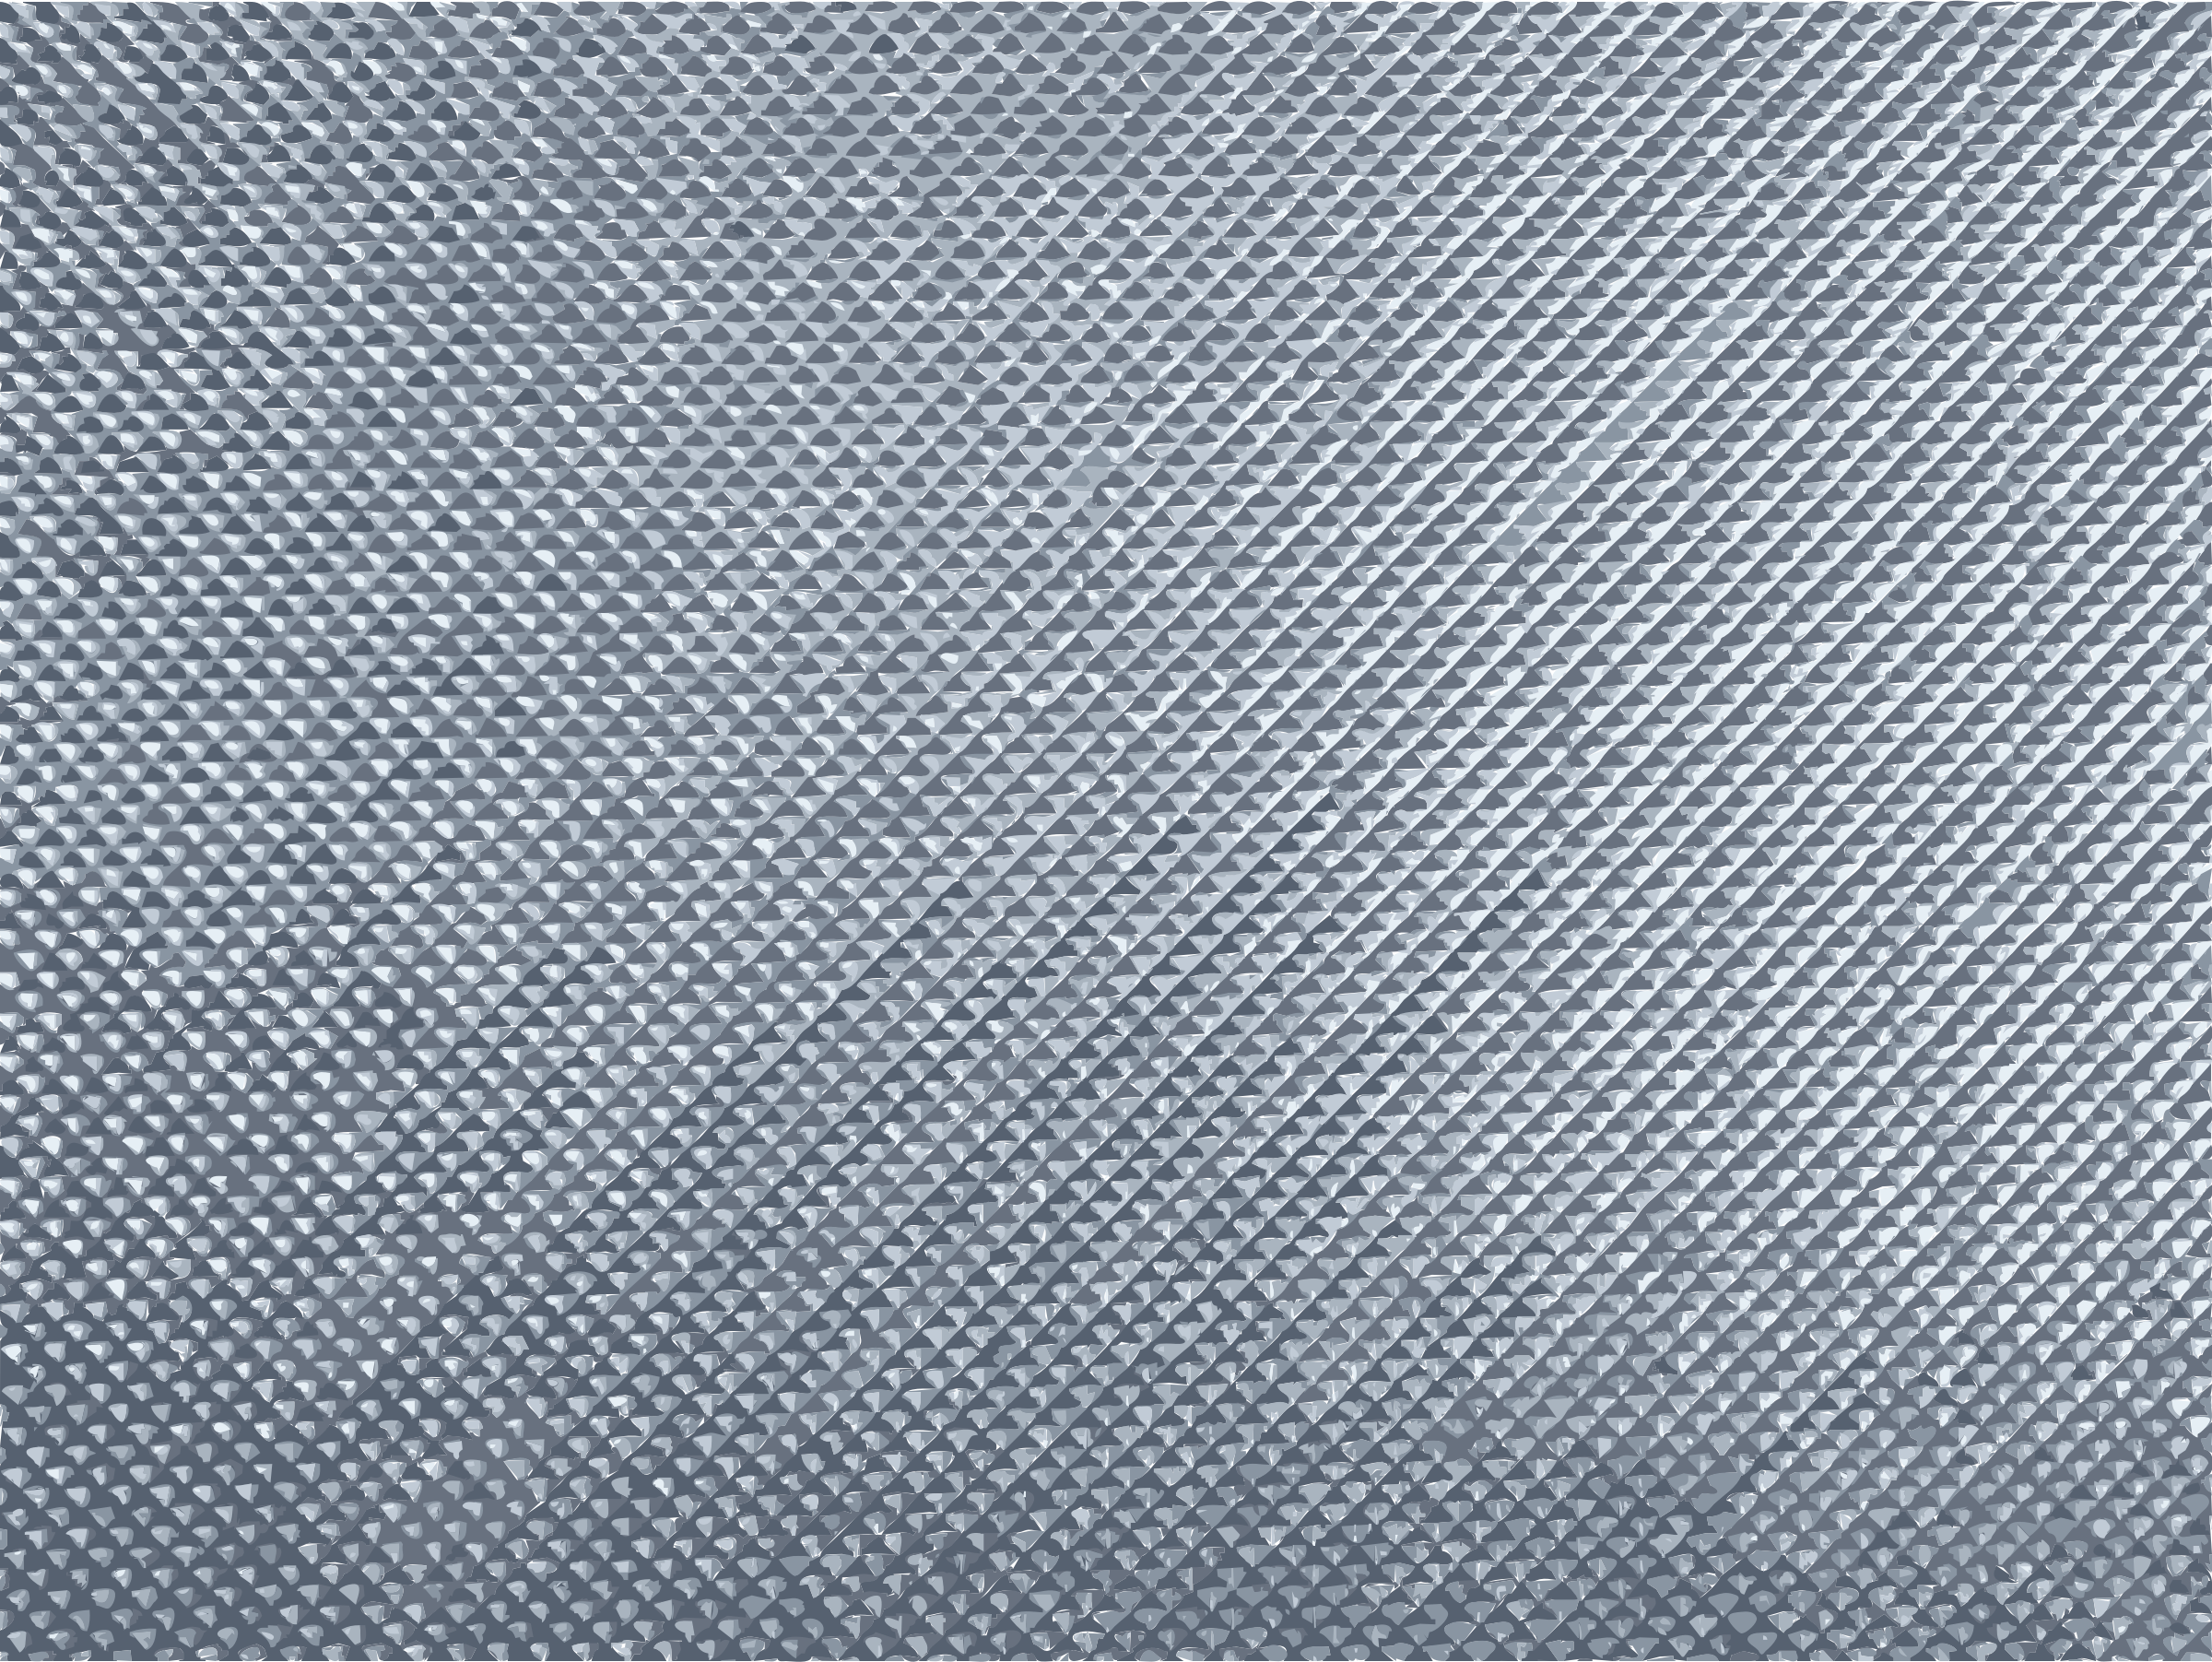 Fabric mesh png. Singaporean surface textures icons